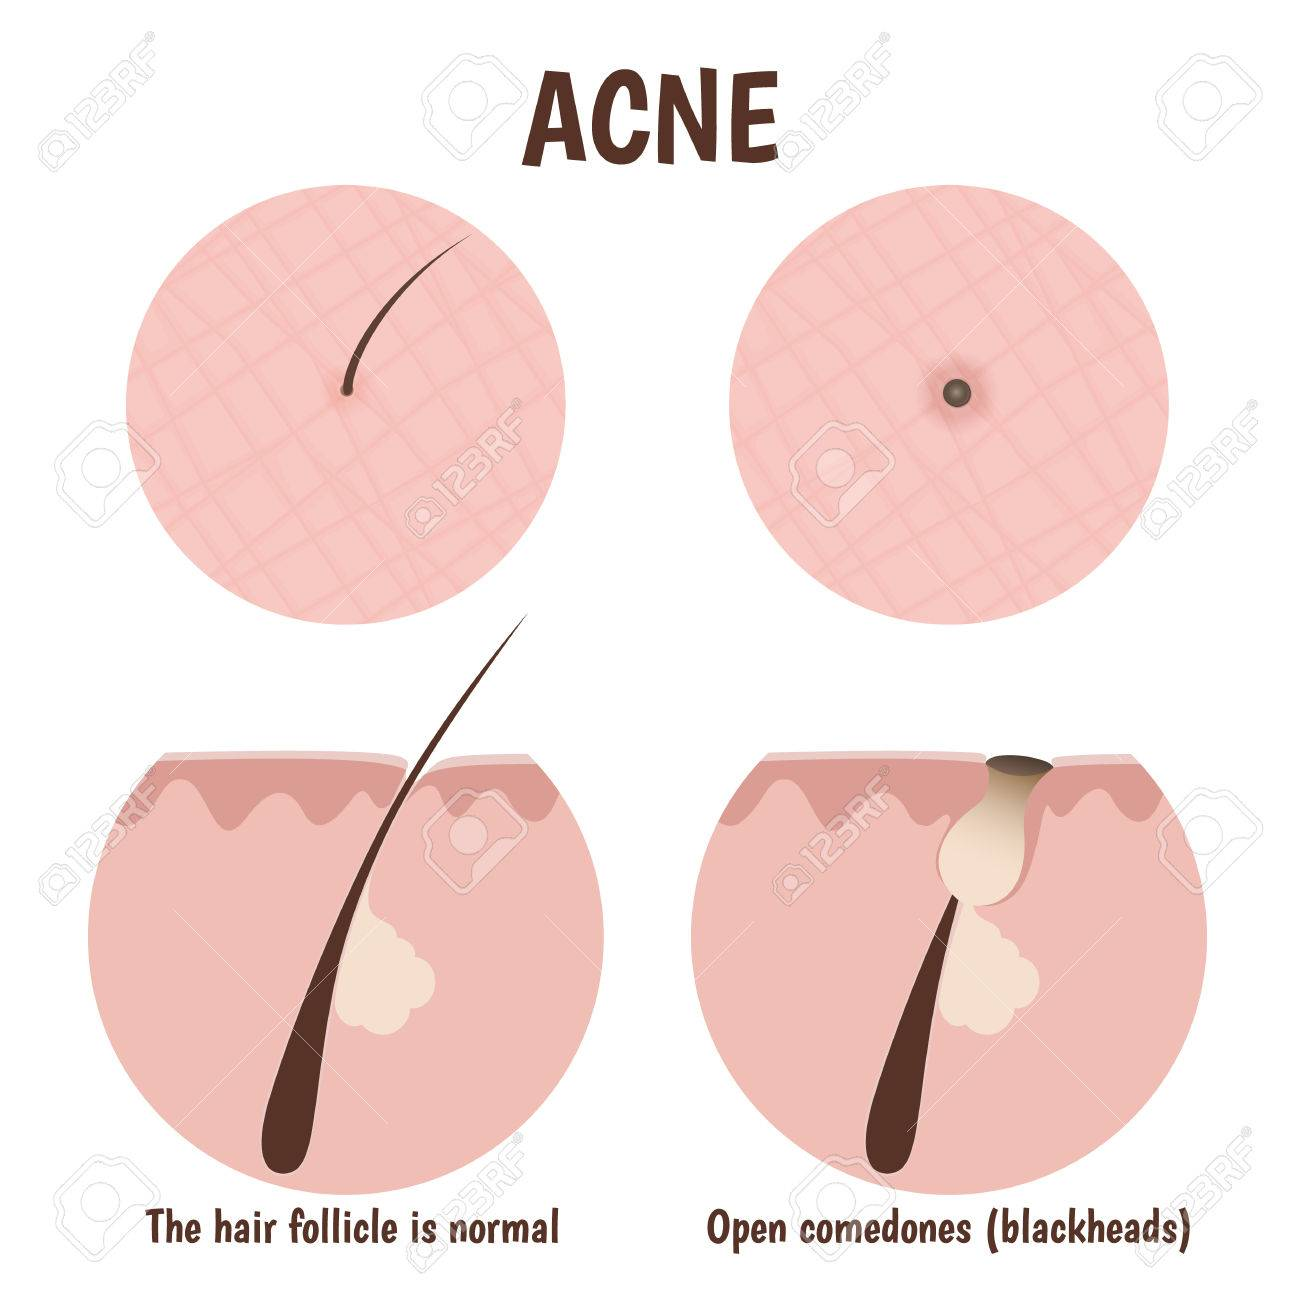 structure of the hair follicle, problematic skin with blackheads - 43761446